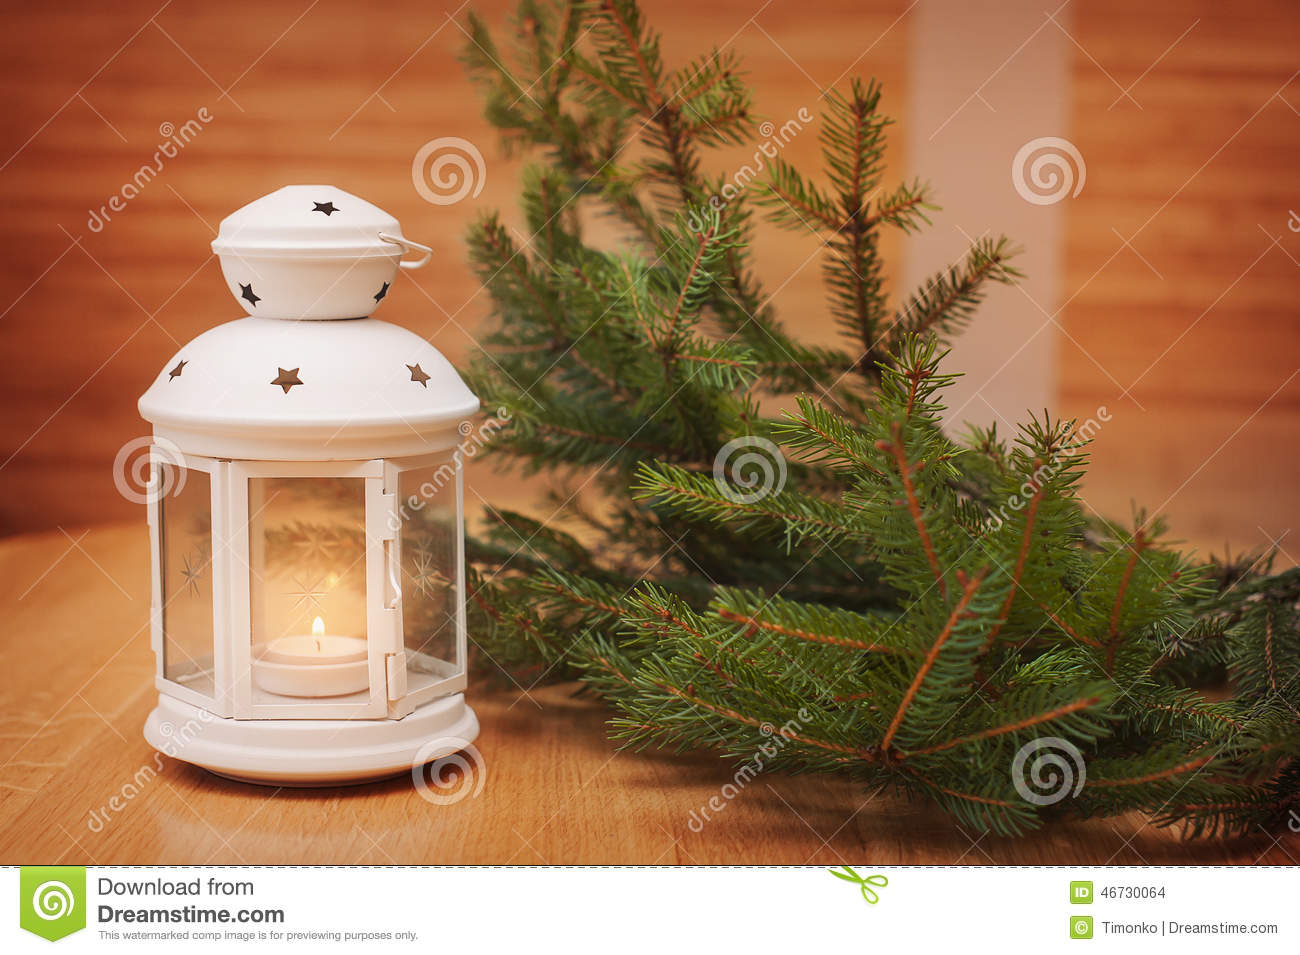 download christmas decorations with lantern christmas greeting card stock photo image of rural